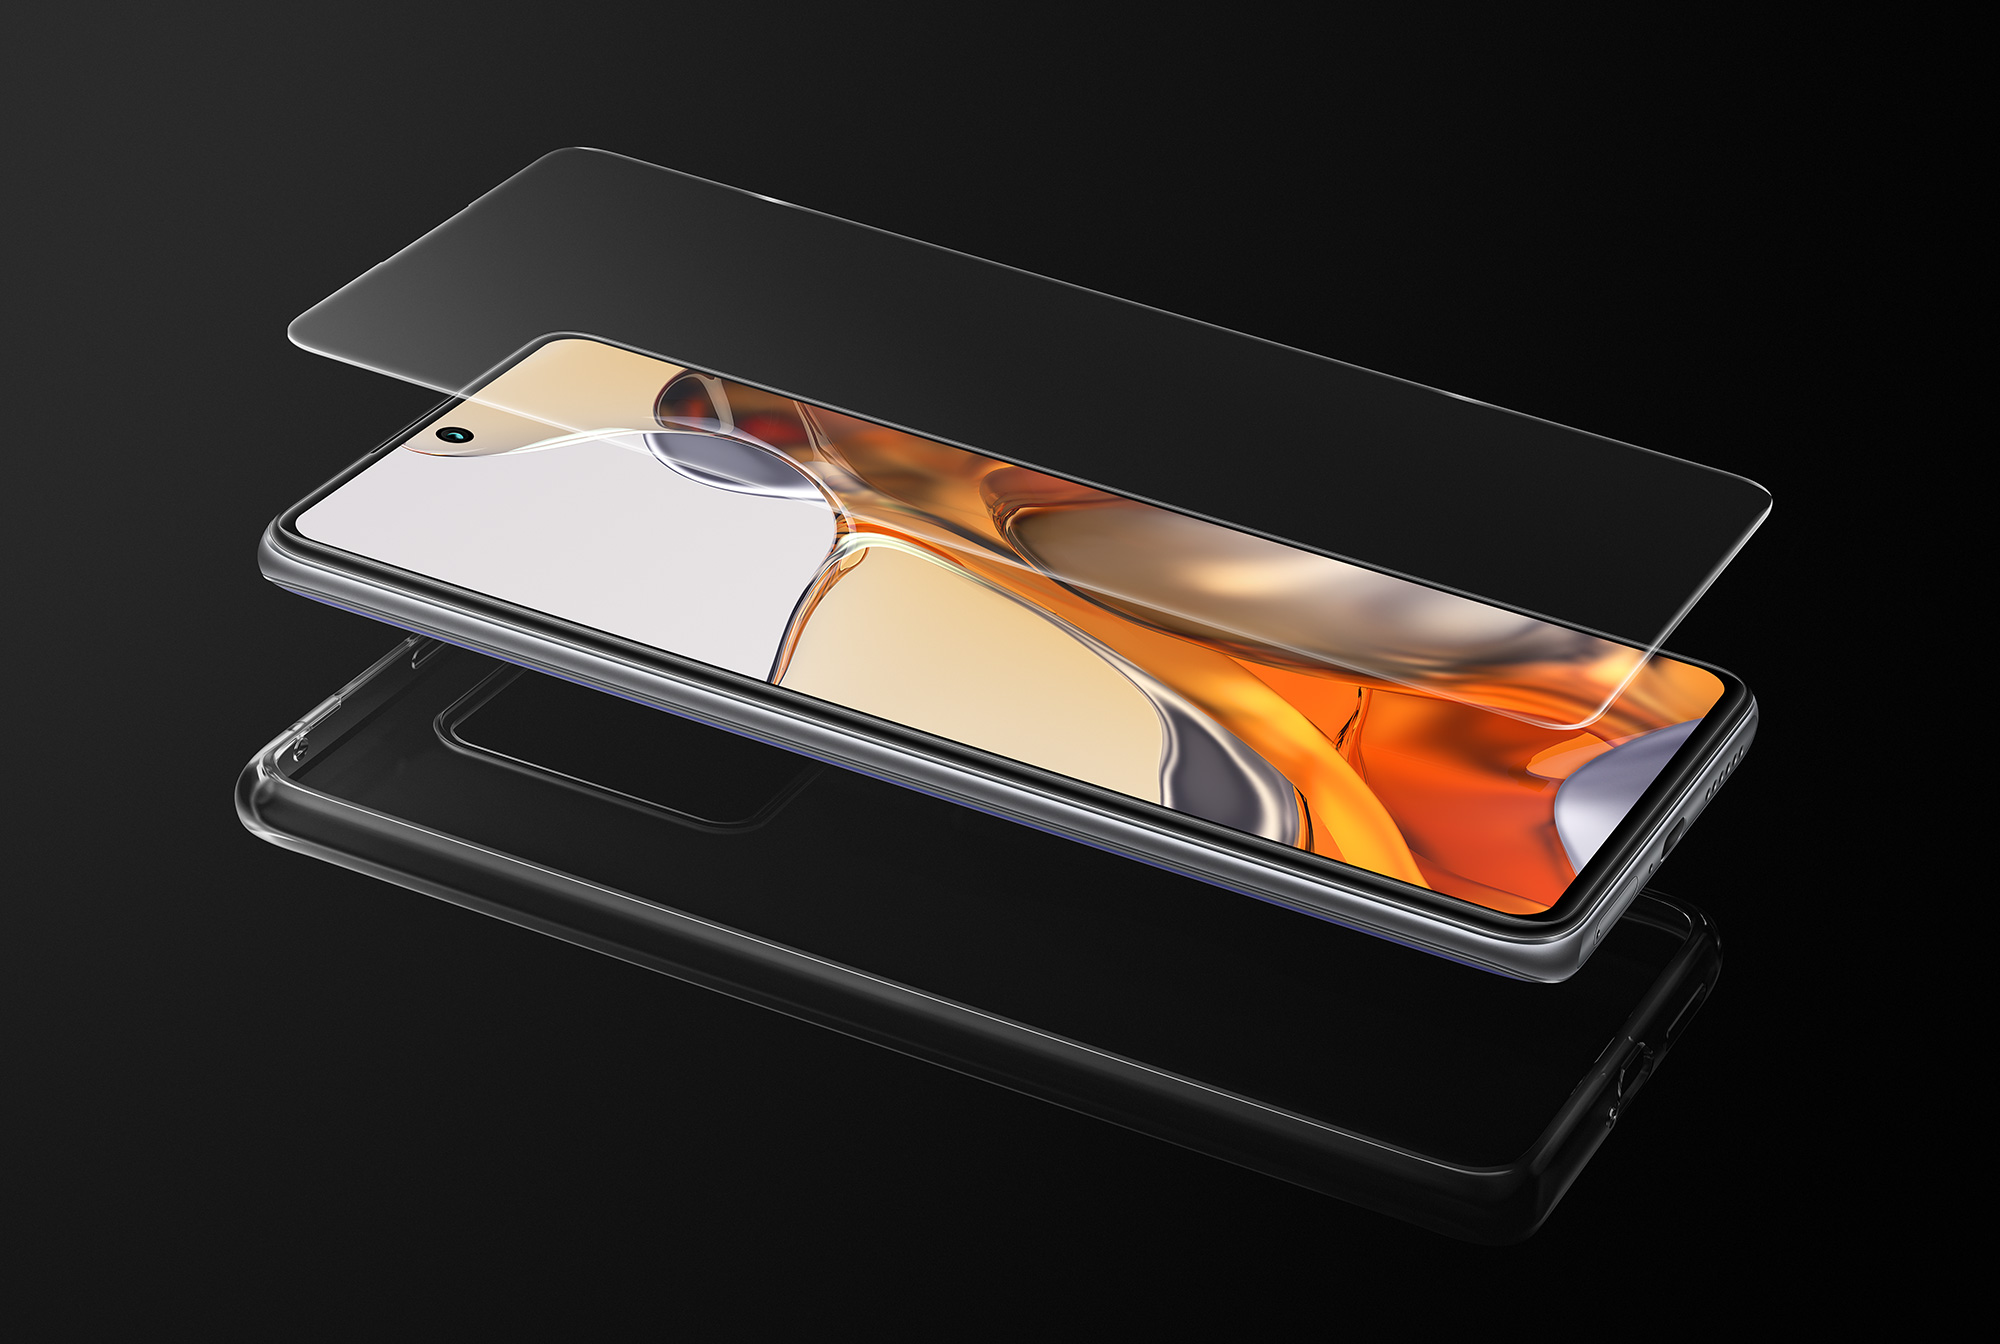 Xiaomi's 11T Pro smartphone supports Dolby Vision video and charges in 17 minutes